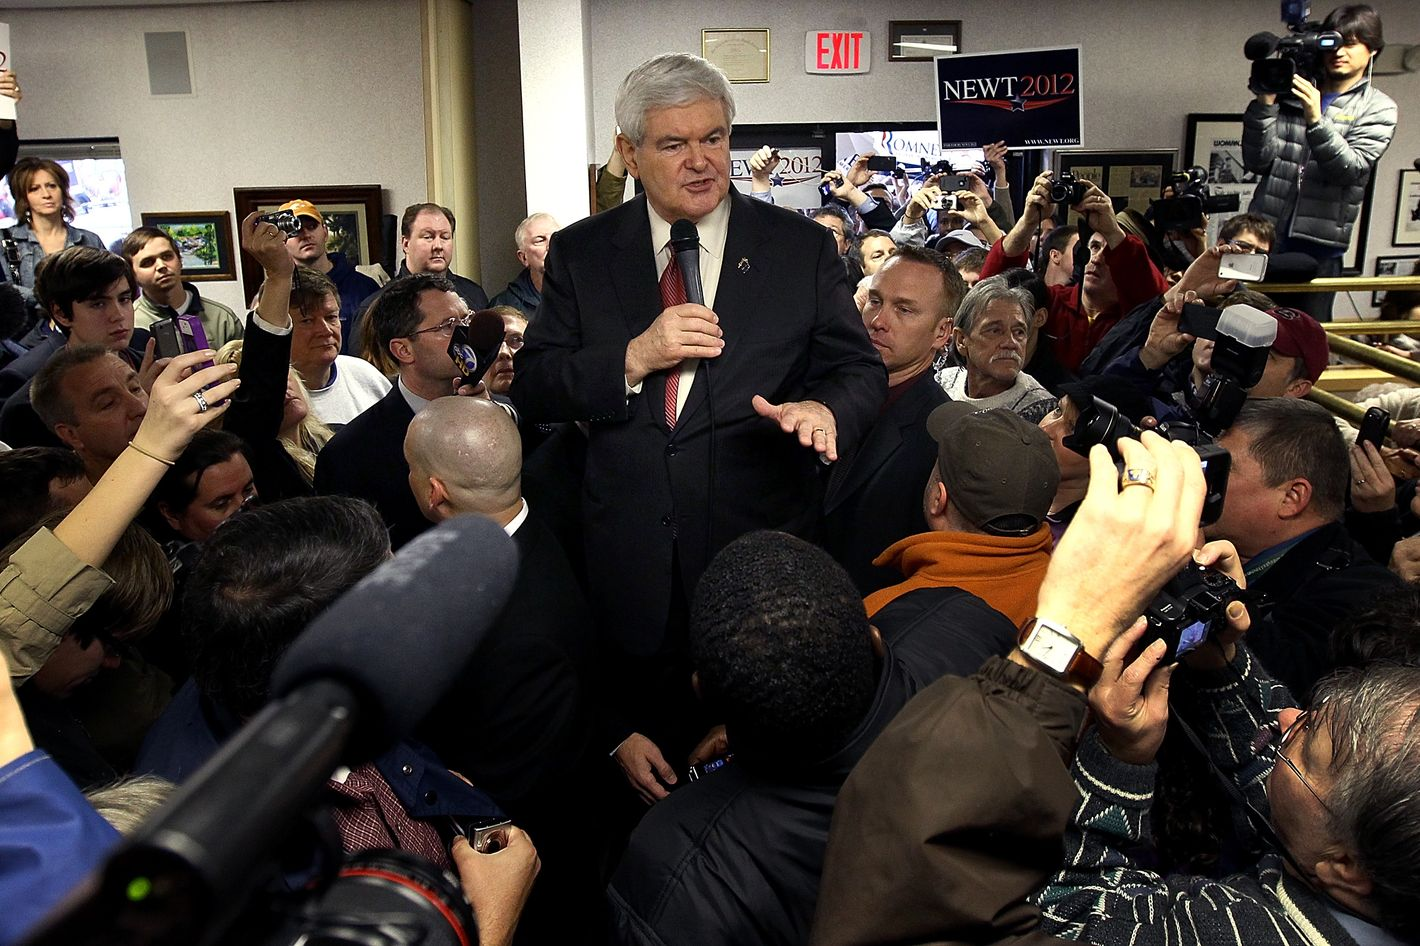 GREENVILLE, SC - JANUARY 21:  Republican presidential candidate, former Speaker of the House Newt Gingrich speaks to a packed house while standing on an ice cooler at Tommy's Country Ham House January 21, 2012 in Greenville, South Carolina. Republican presidential candidate, former Massachusetts Gov. Mitt Romney also campaigned at Tommy's Country Ham House just before Gingrich. South Carolina holds its pivotal presidential primary today.  (Photo by Win McNamee/Getty Images)